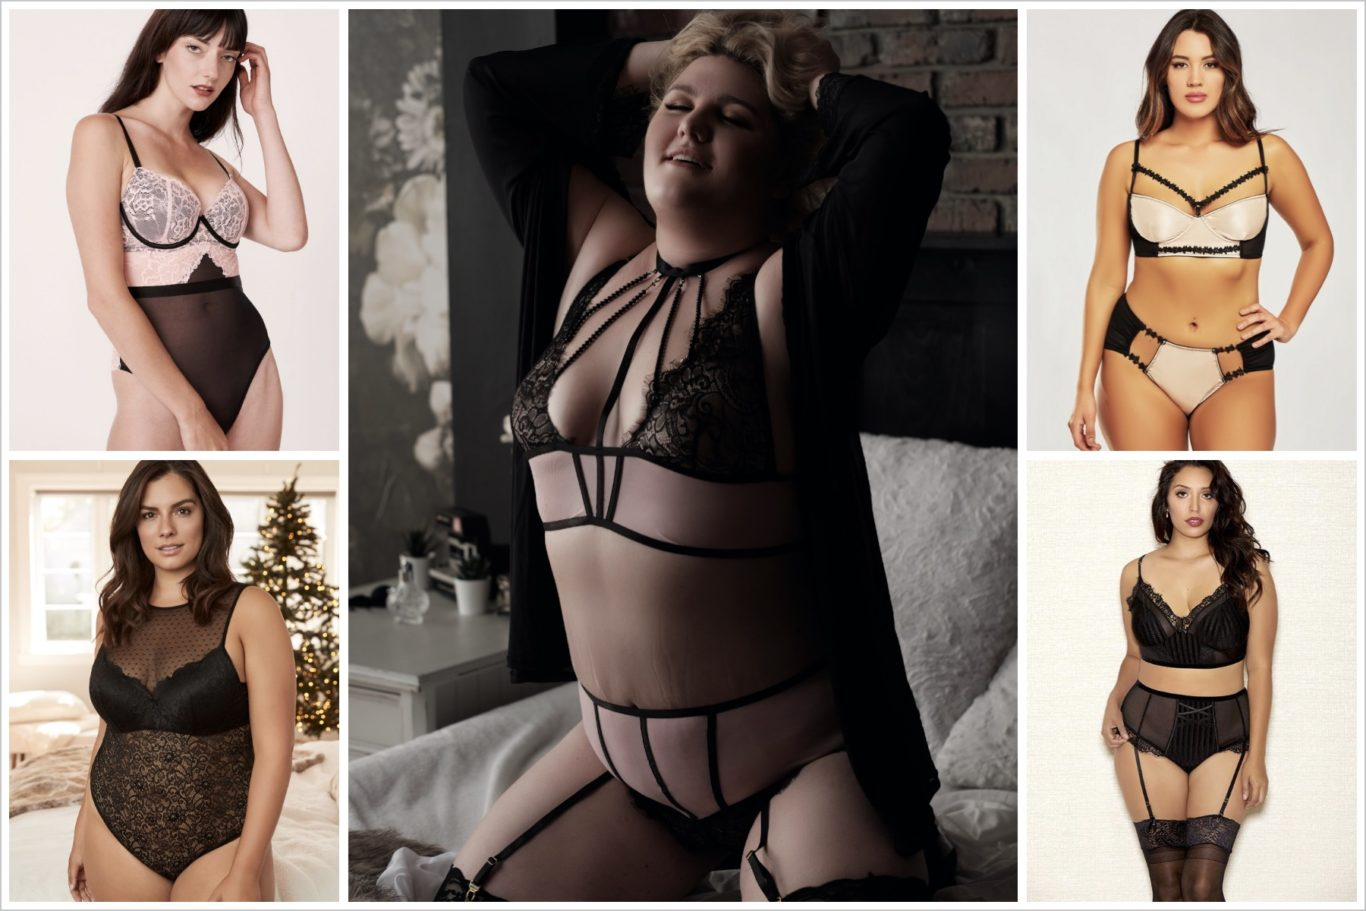 Four different models in various lingerie, with a photo of me in the middle in my bra set during my boudoir shoot